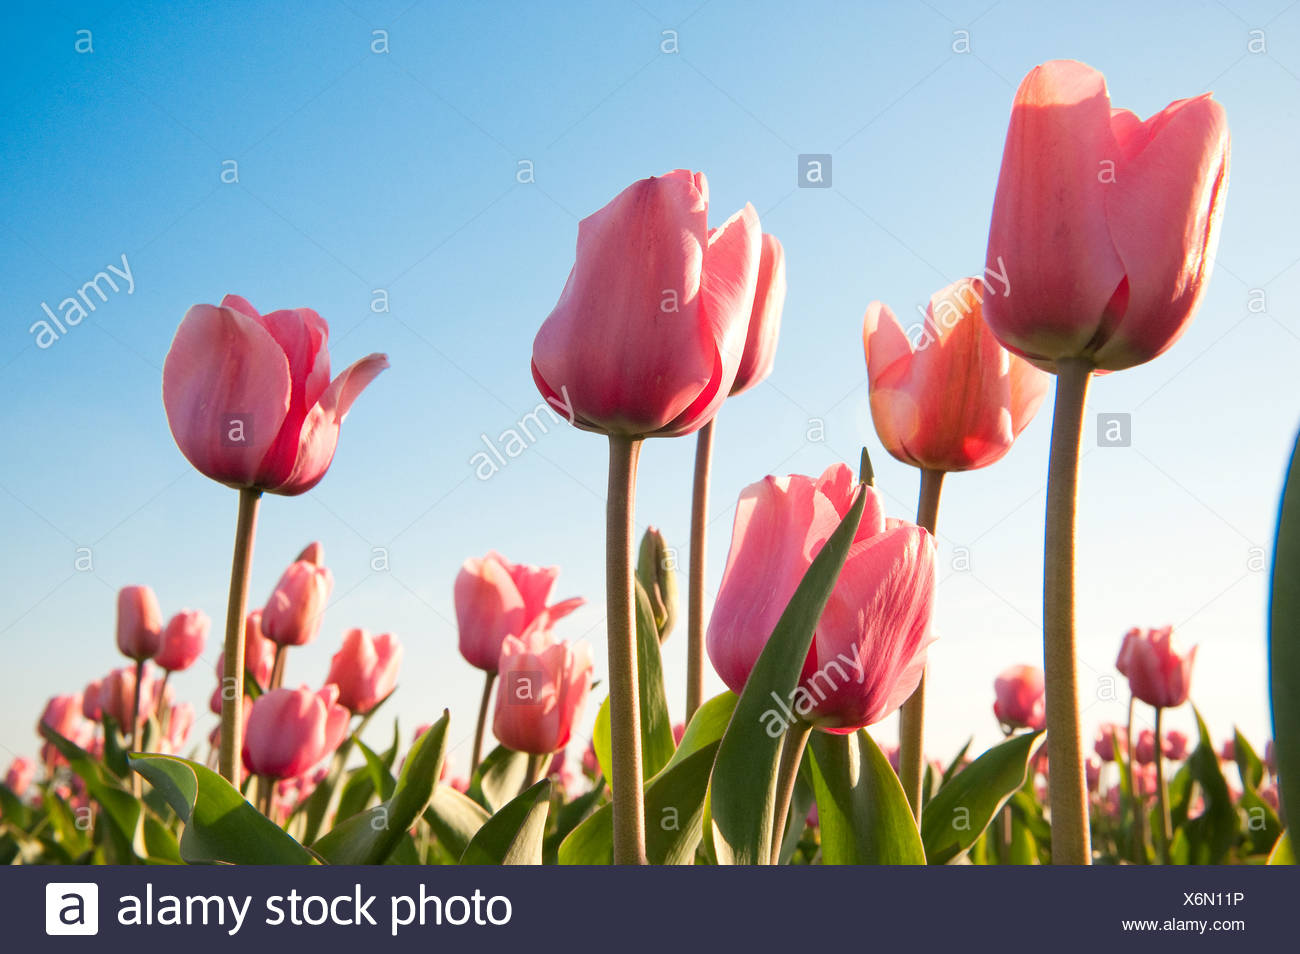 Pink tulips, Skagit County, Washington - Stock Image